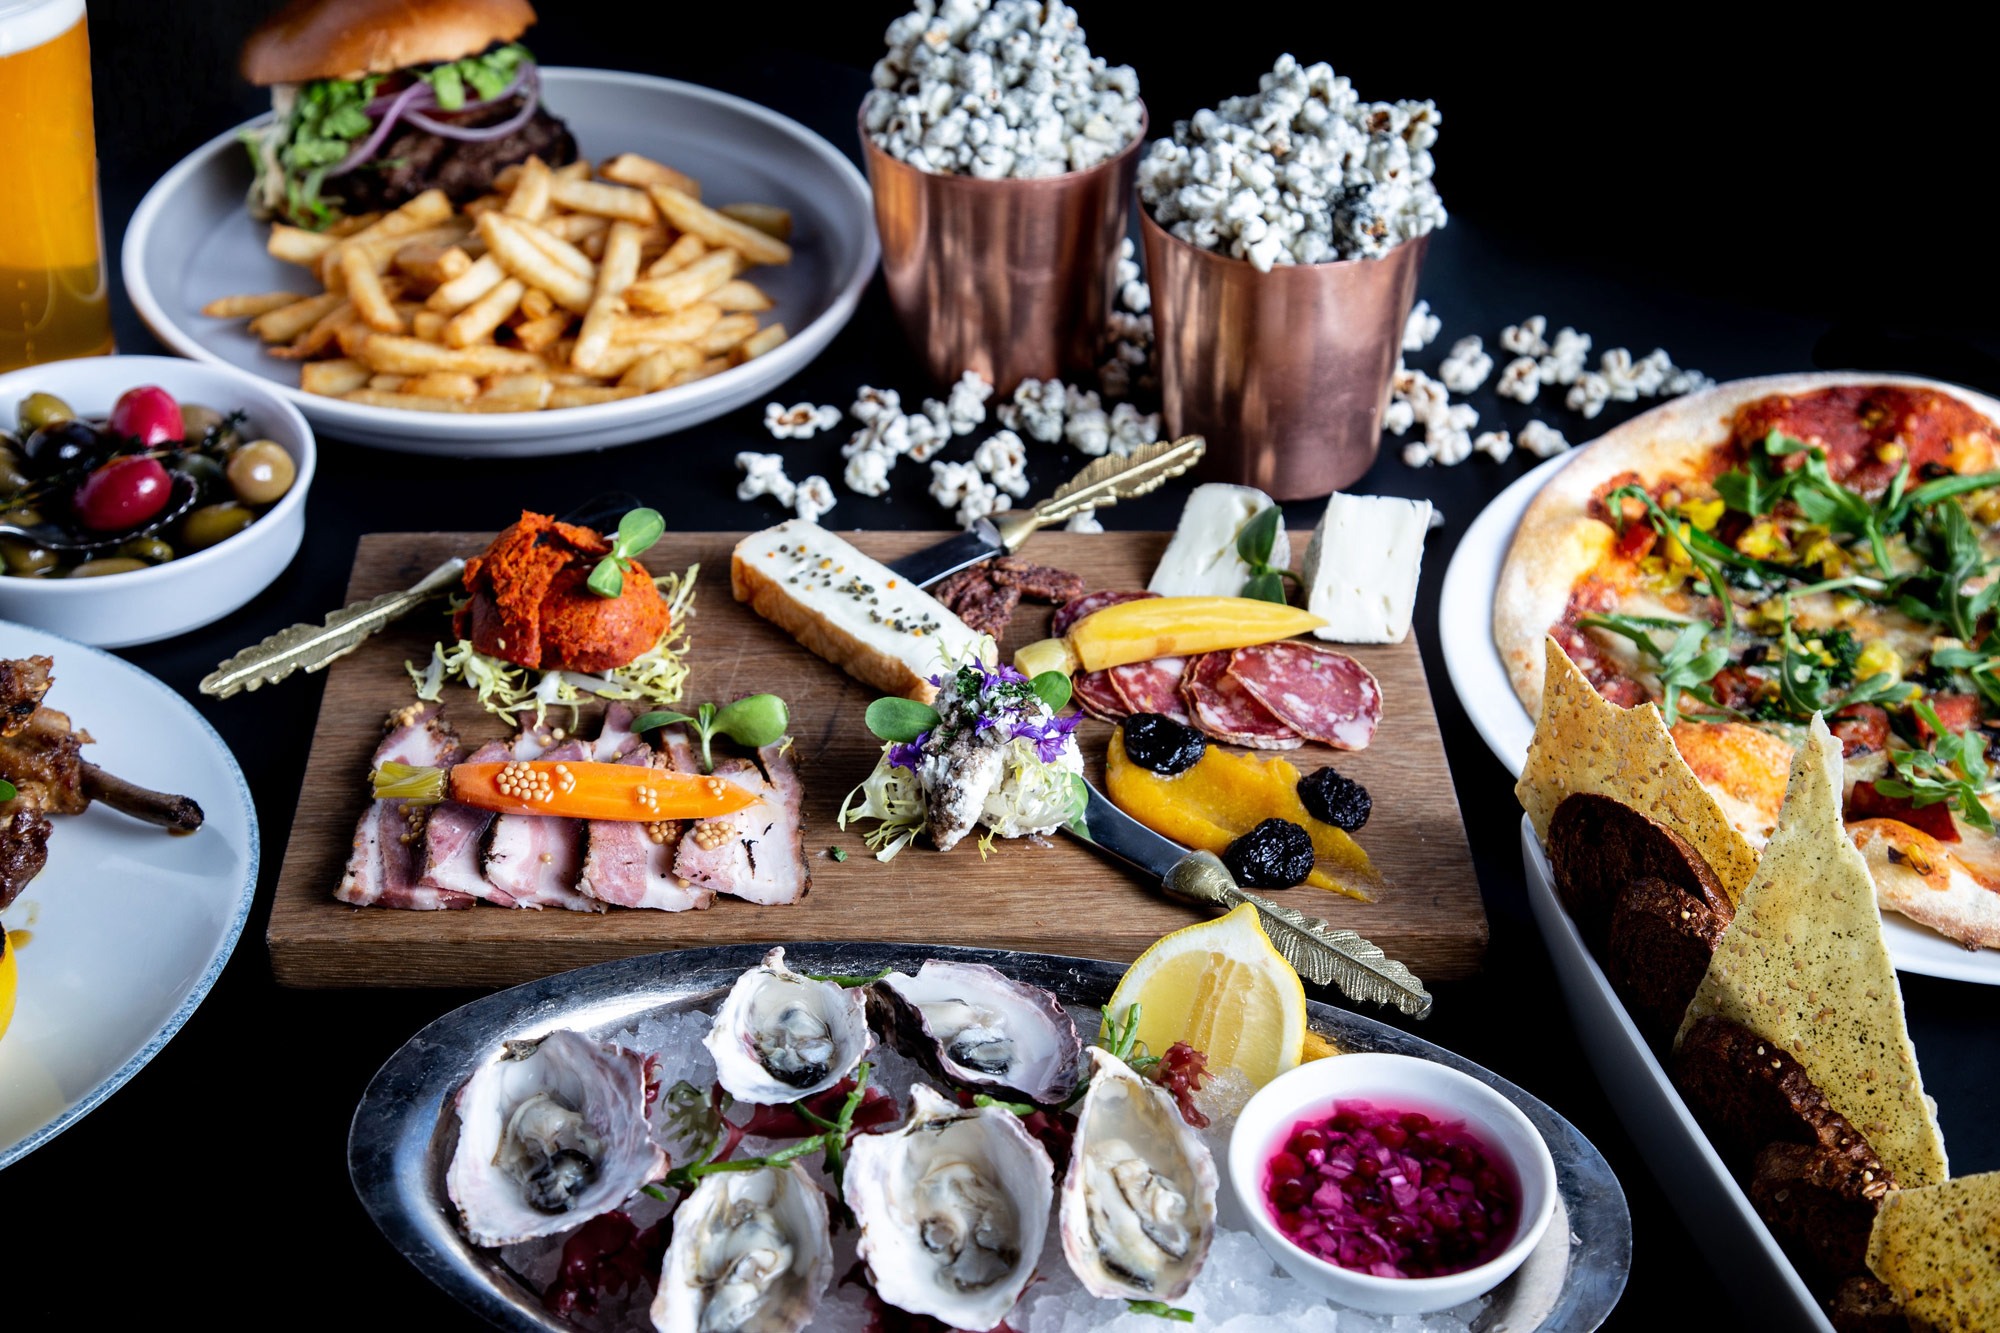 Burger and fries, popcorn, charcuterie, oysters